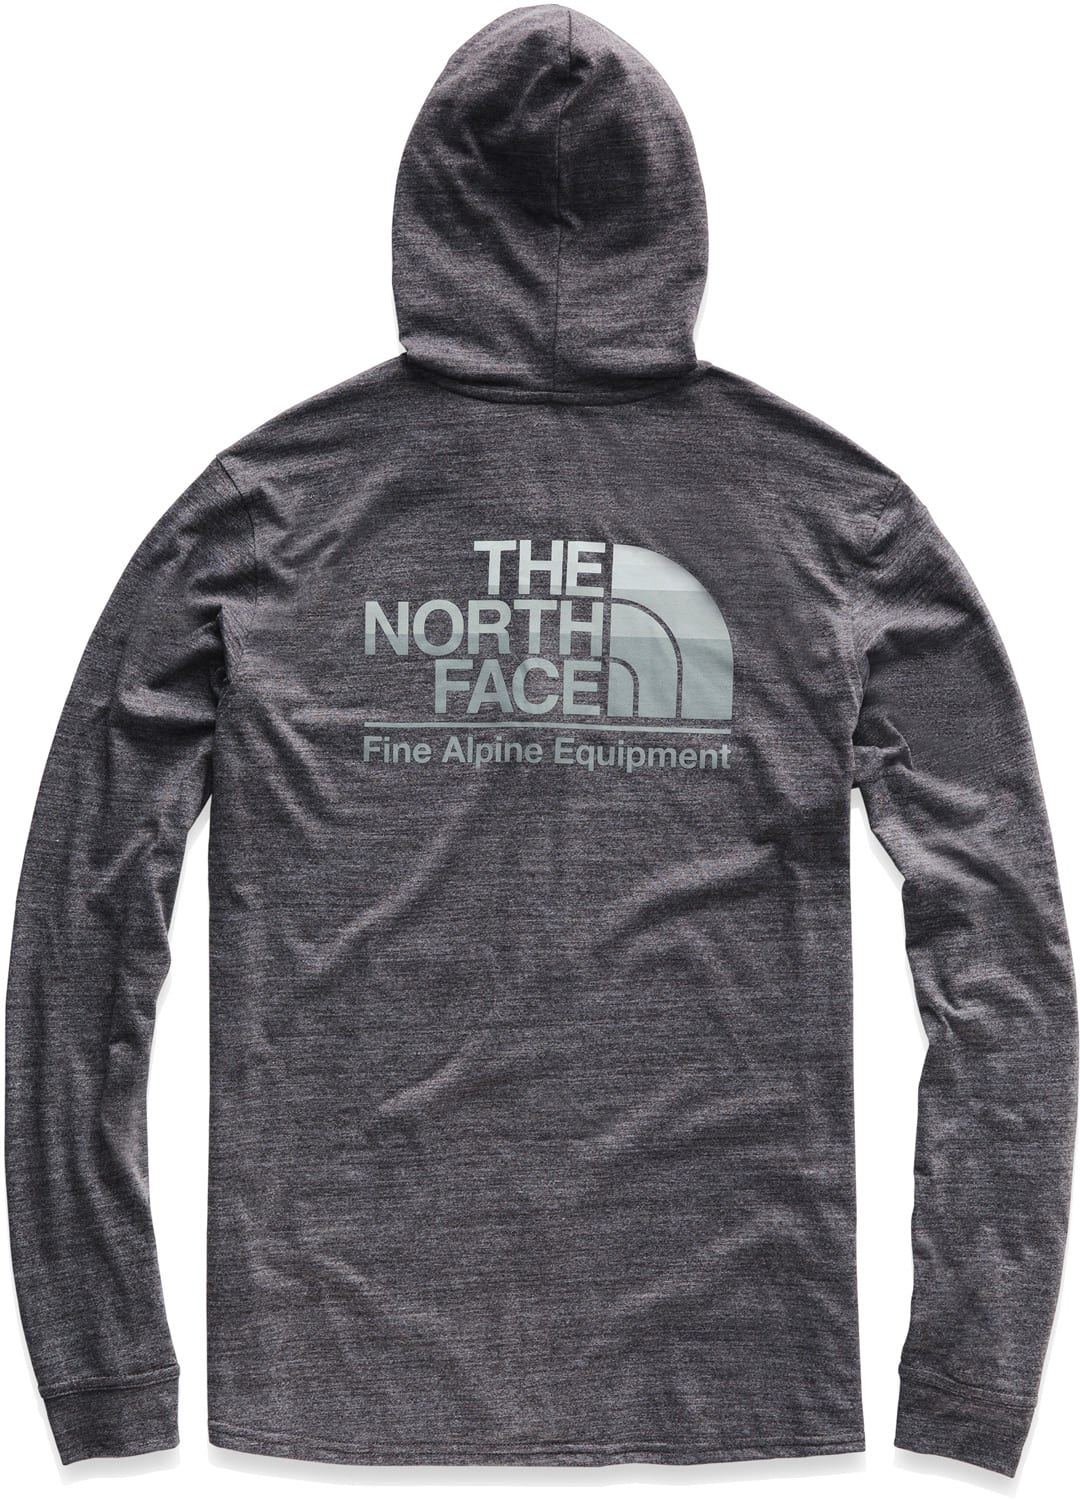 8b6065c1442183 north-face-gradient-sunset-tri-blend-fullzip-hoodie-tnf-dark-grey-heather-19-1.jpg